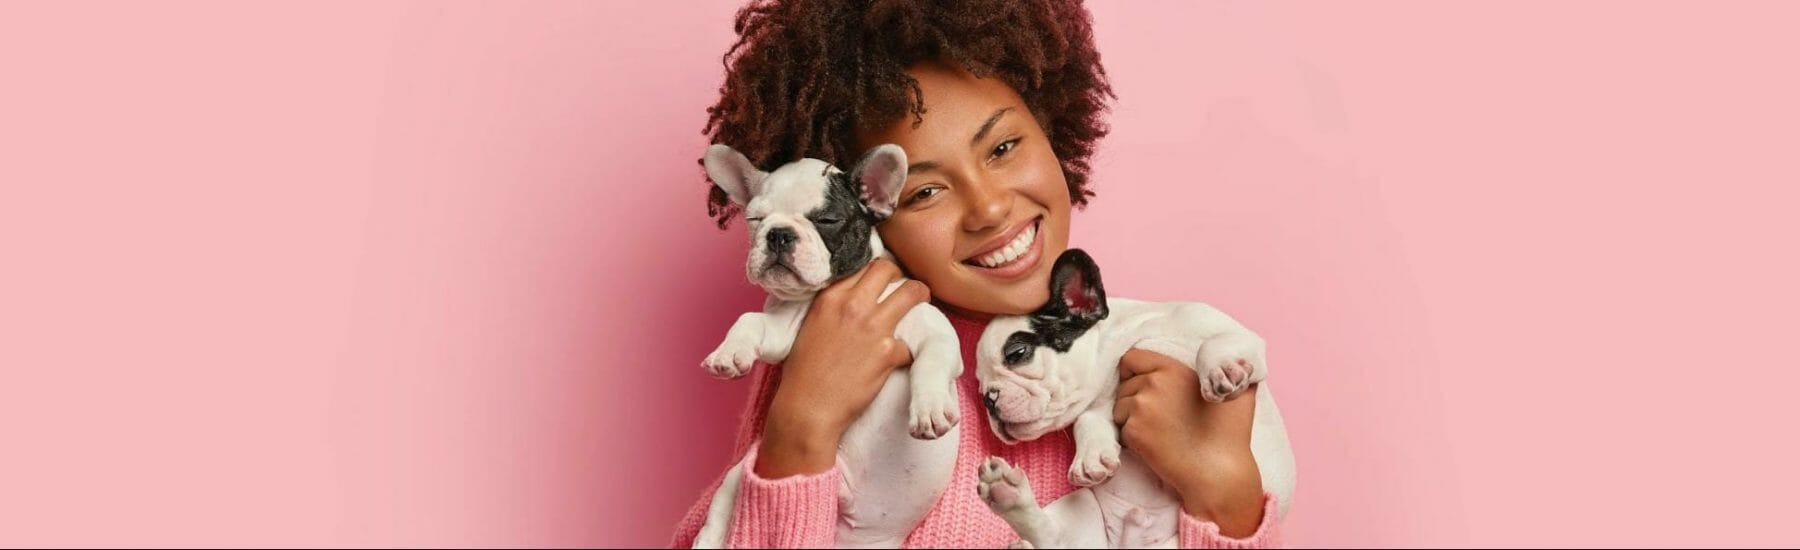 Lady holding two pugs with pink background